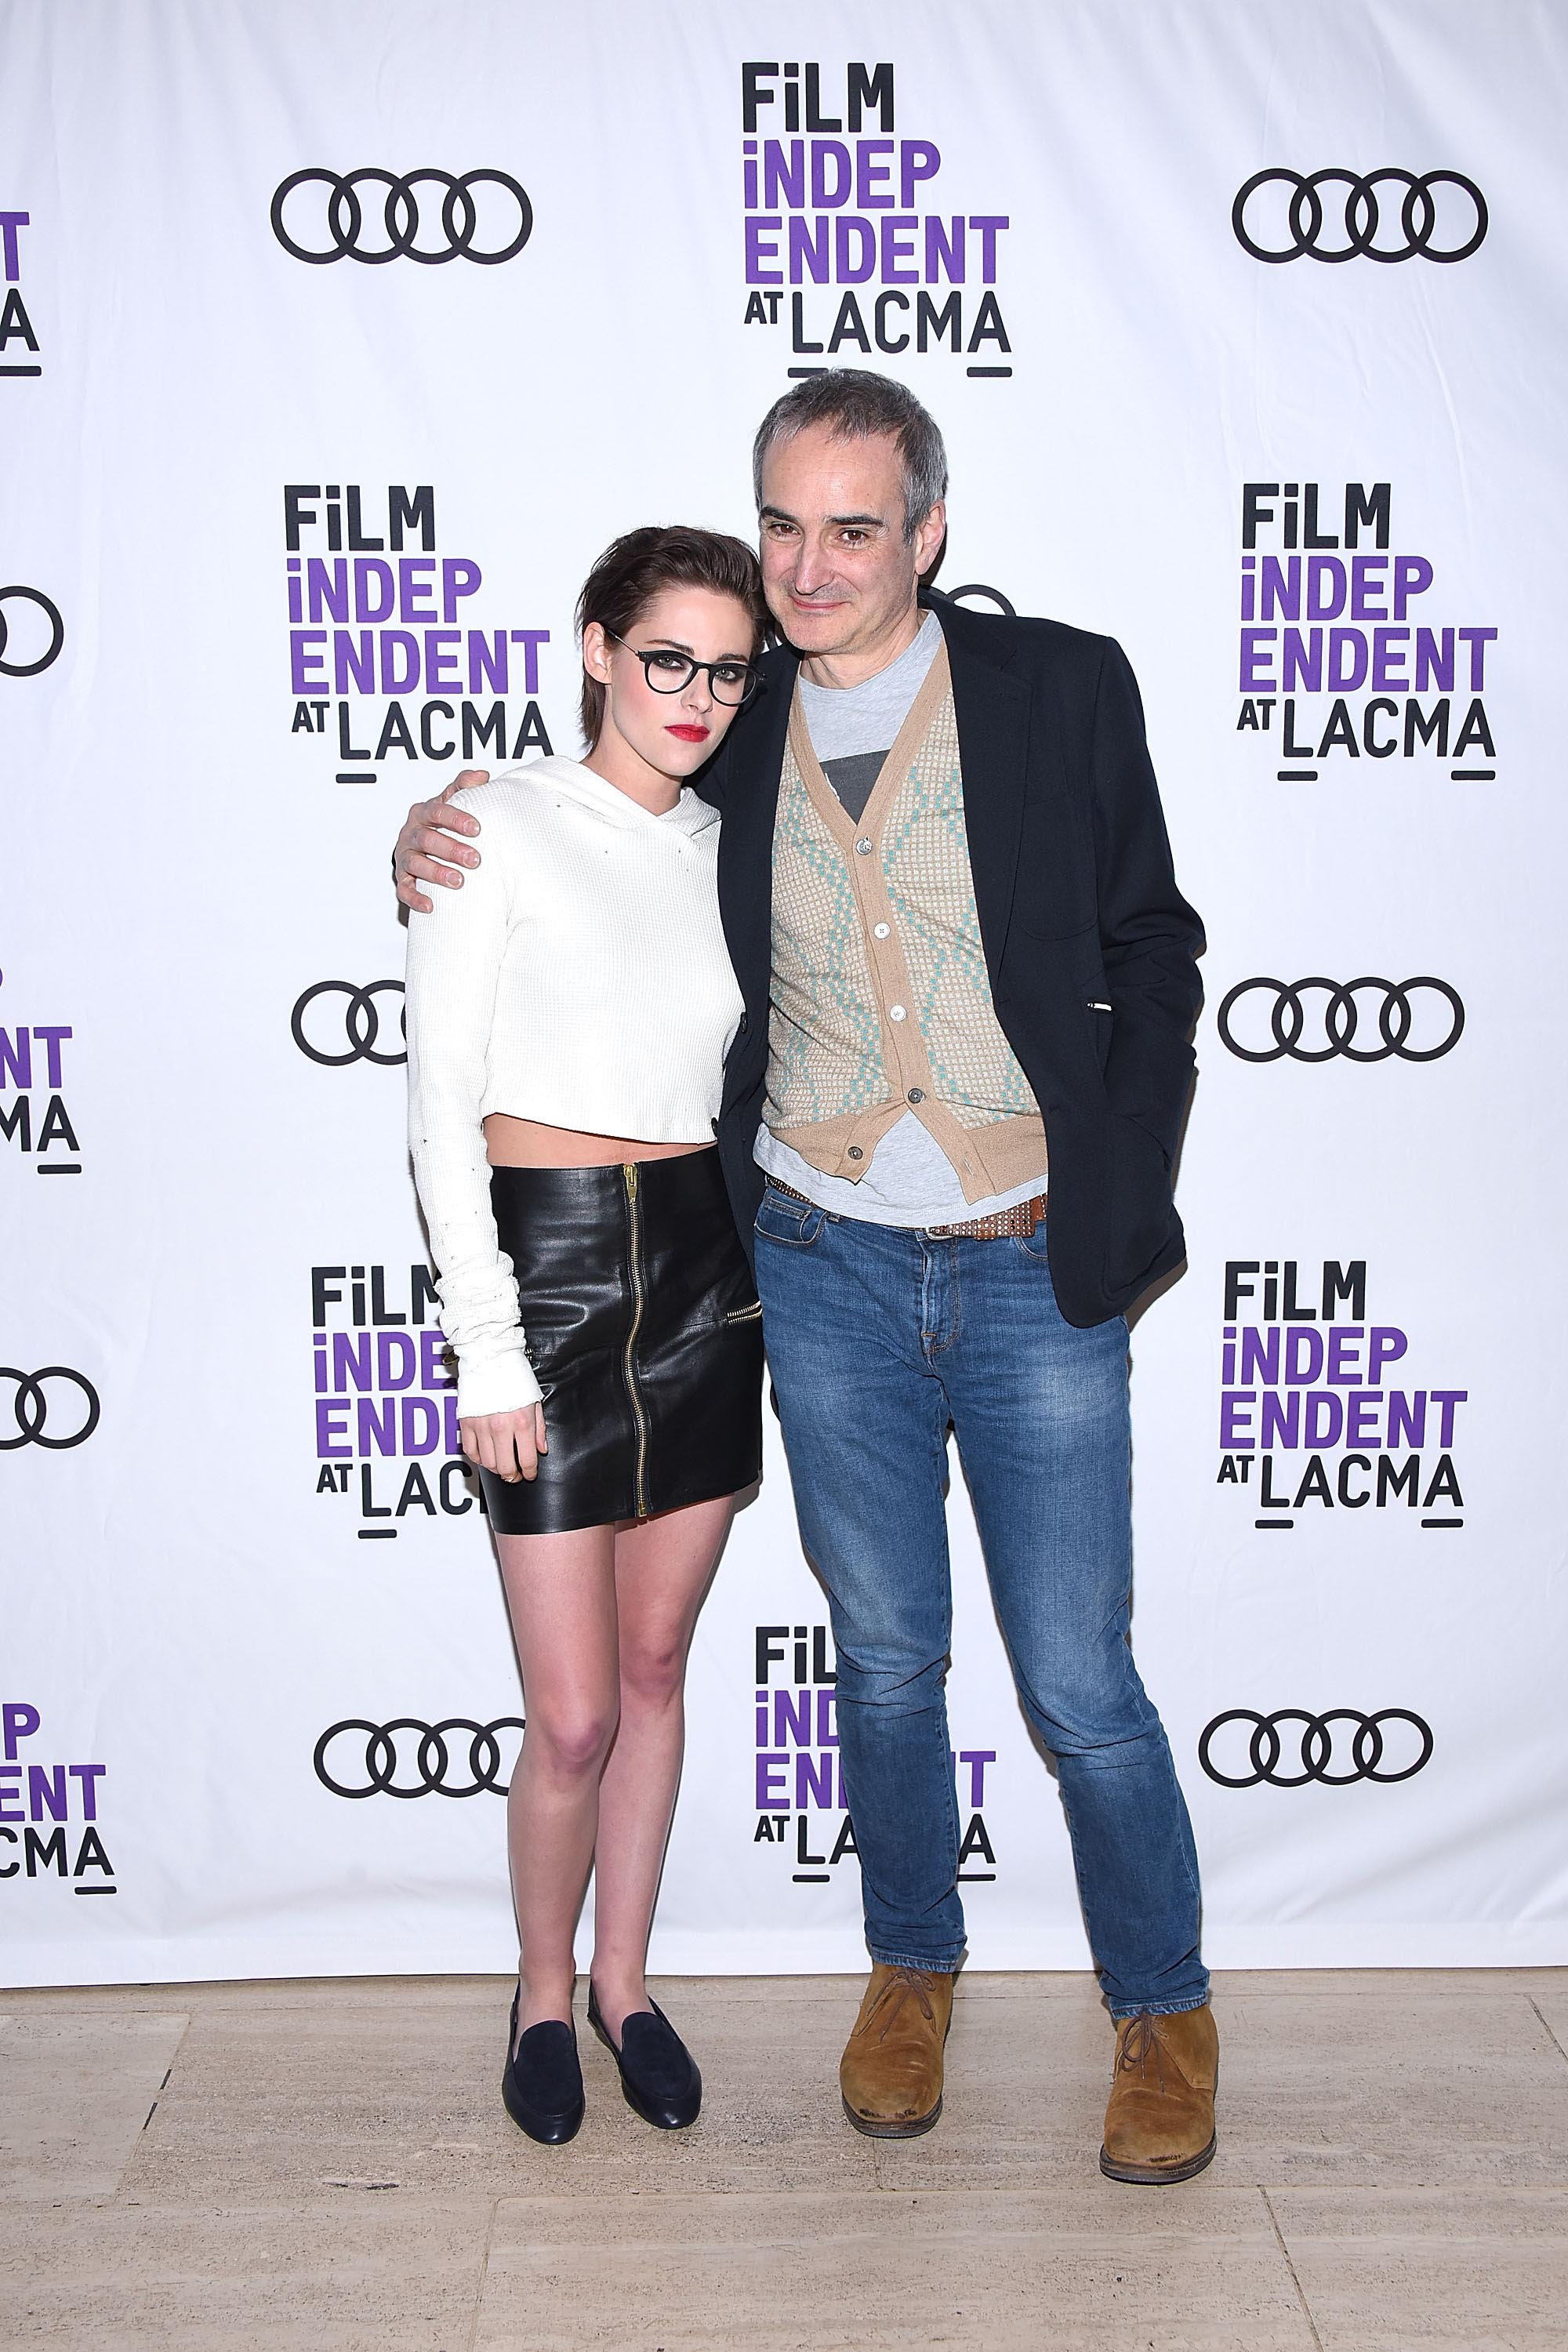 Kristen Stewart attends the Film Independent at LACMA screening